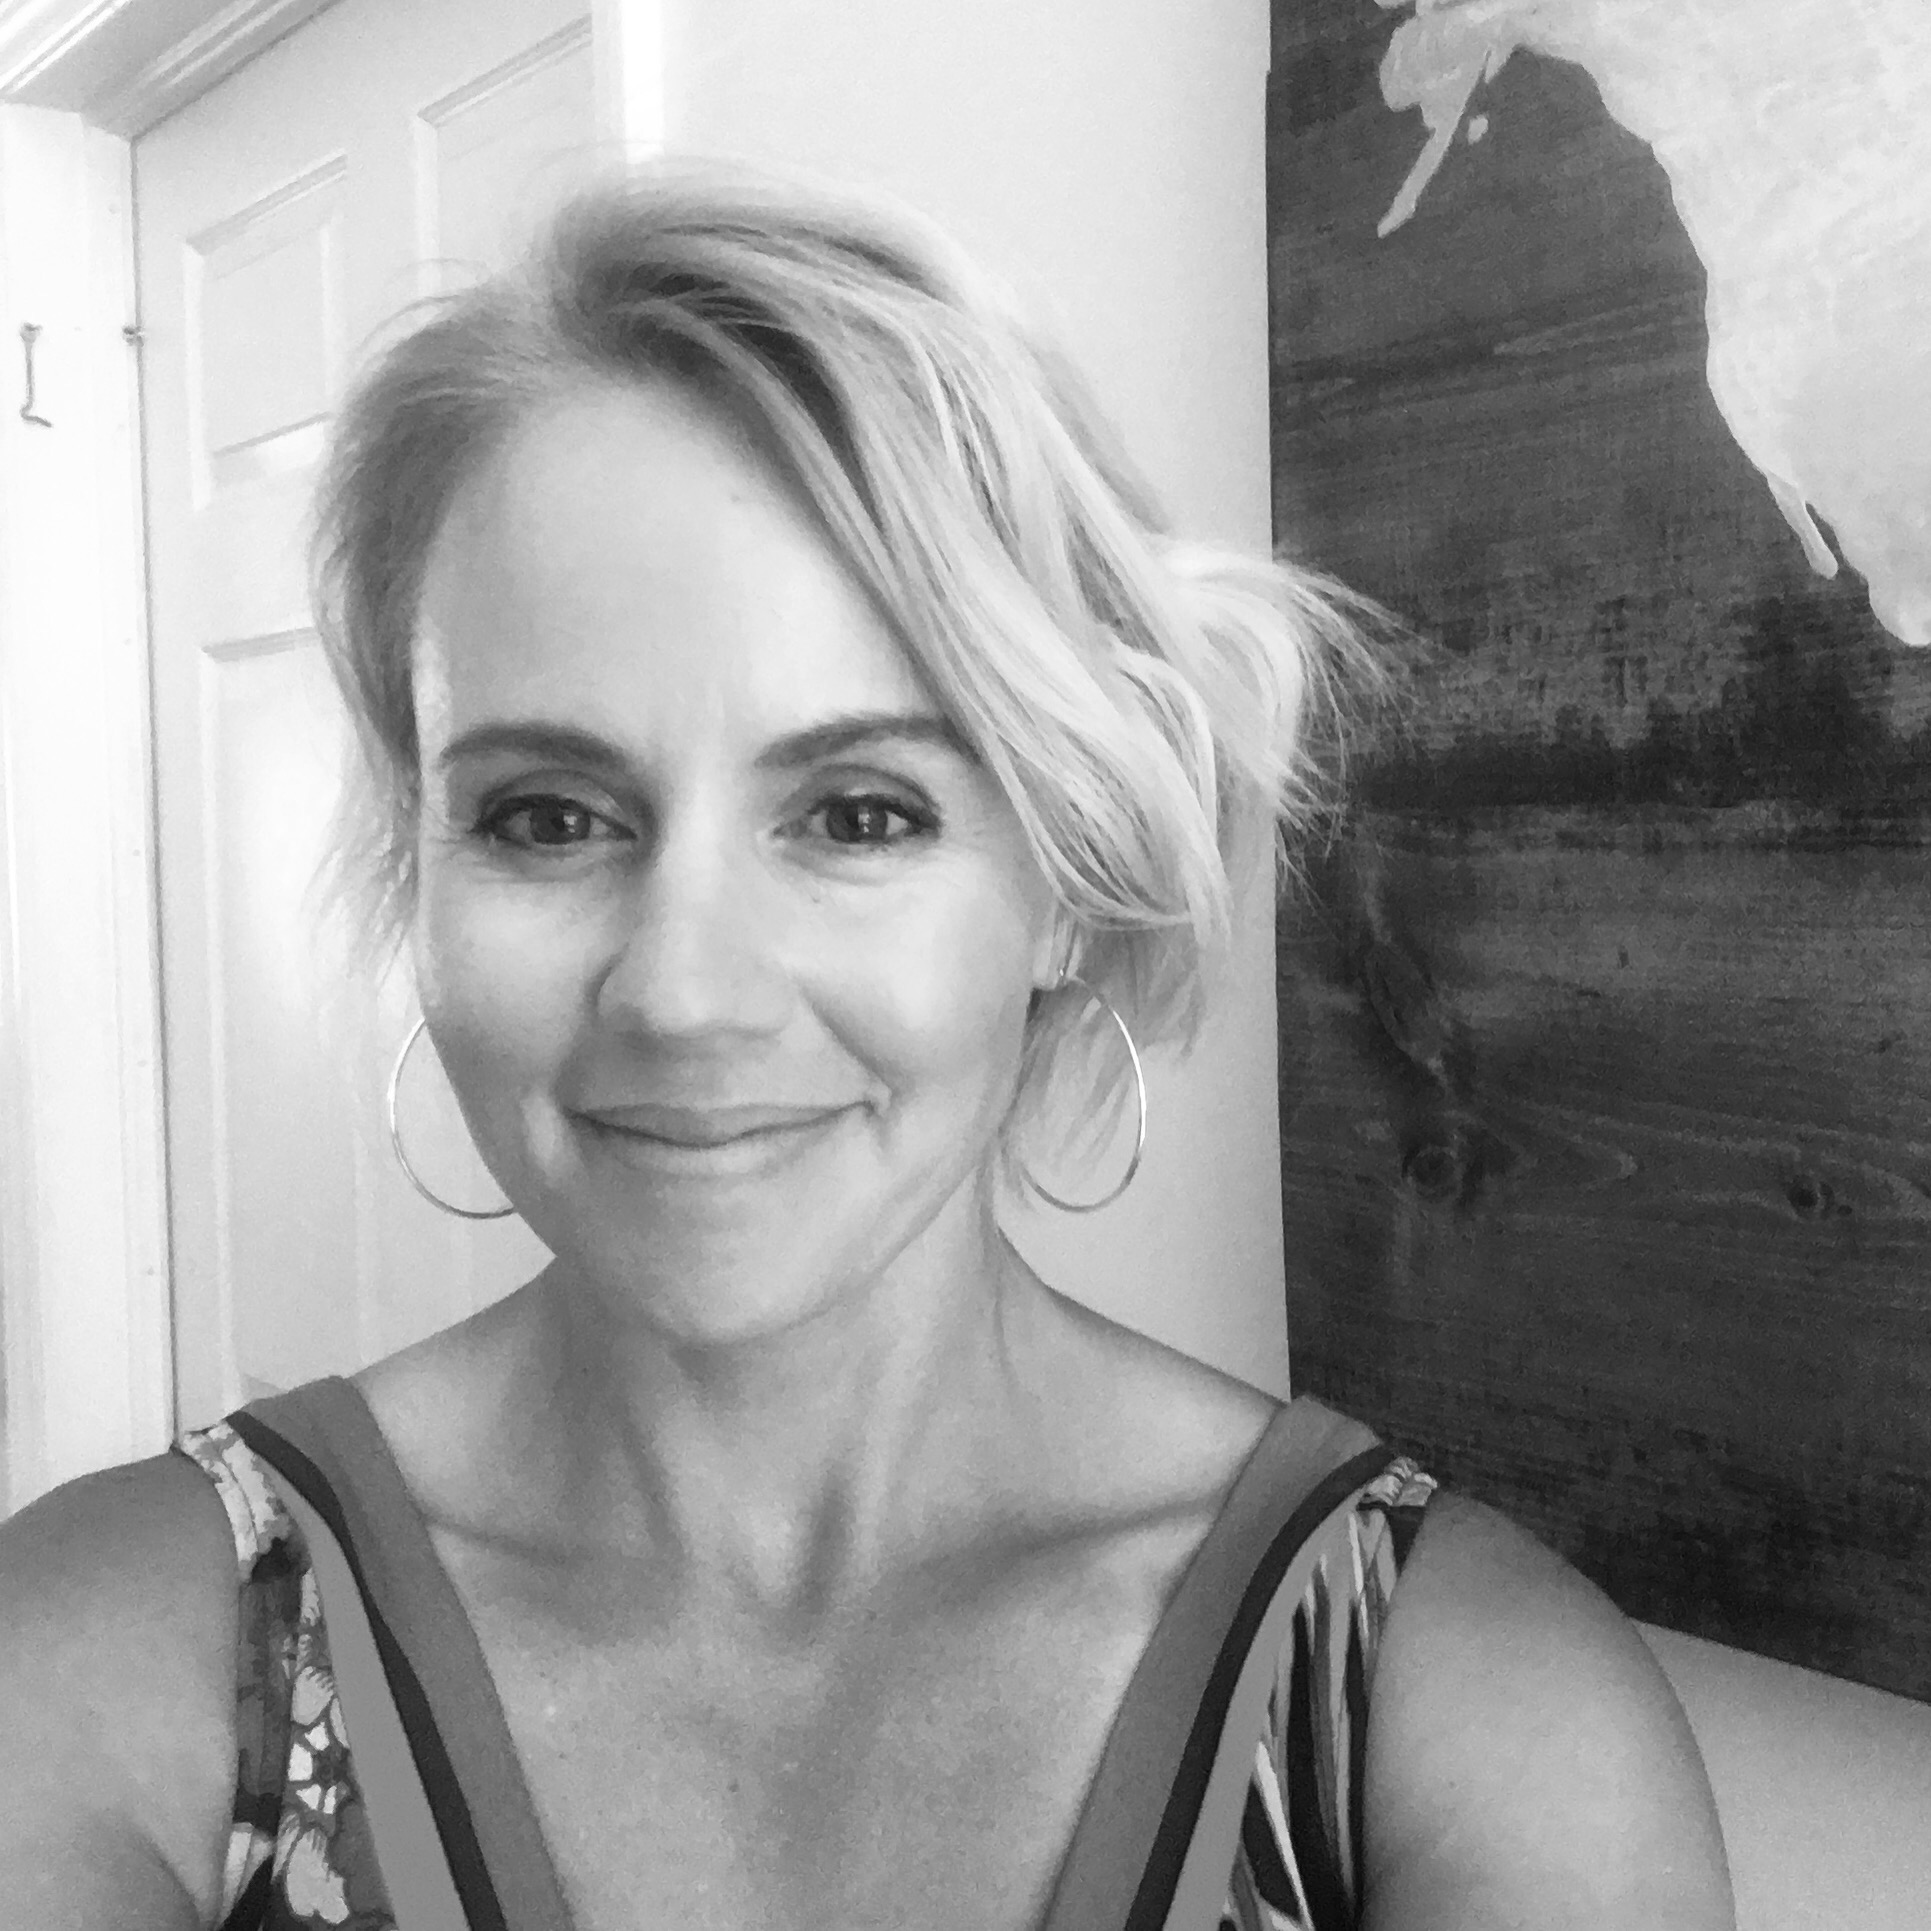 Sarah Bauler, MPH - Twenty-one years of experience designing, managing and evaluating development projects in over 20 countries in Africa, Asia and Latin America.Sarah is currently a Senior Technical Advisor in health and nutrition for Food for the Hungry.